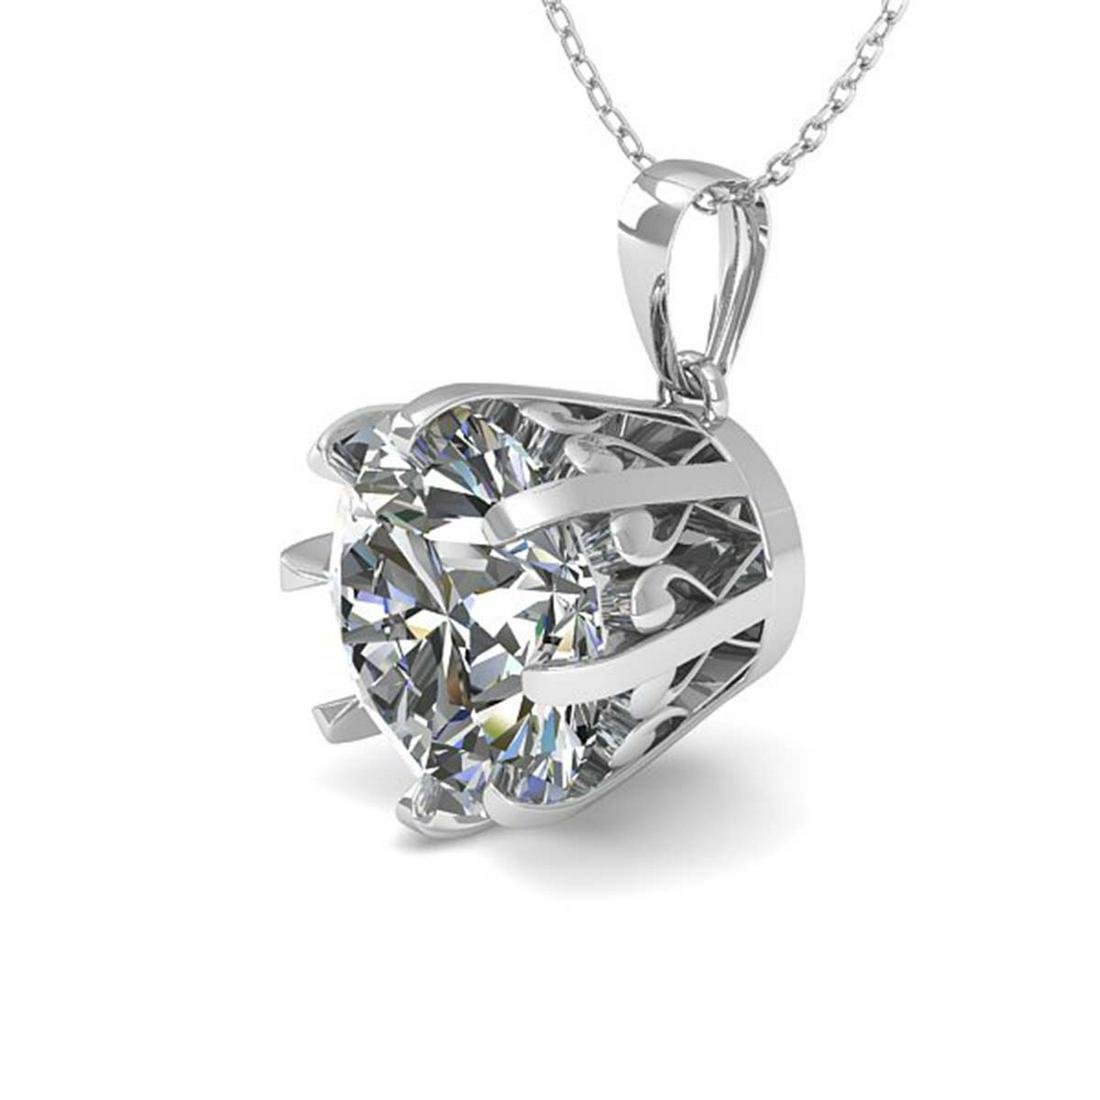 2 ctw Diamond Solitaire Necklace 18K White Gold